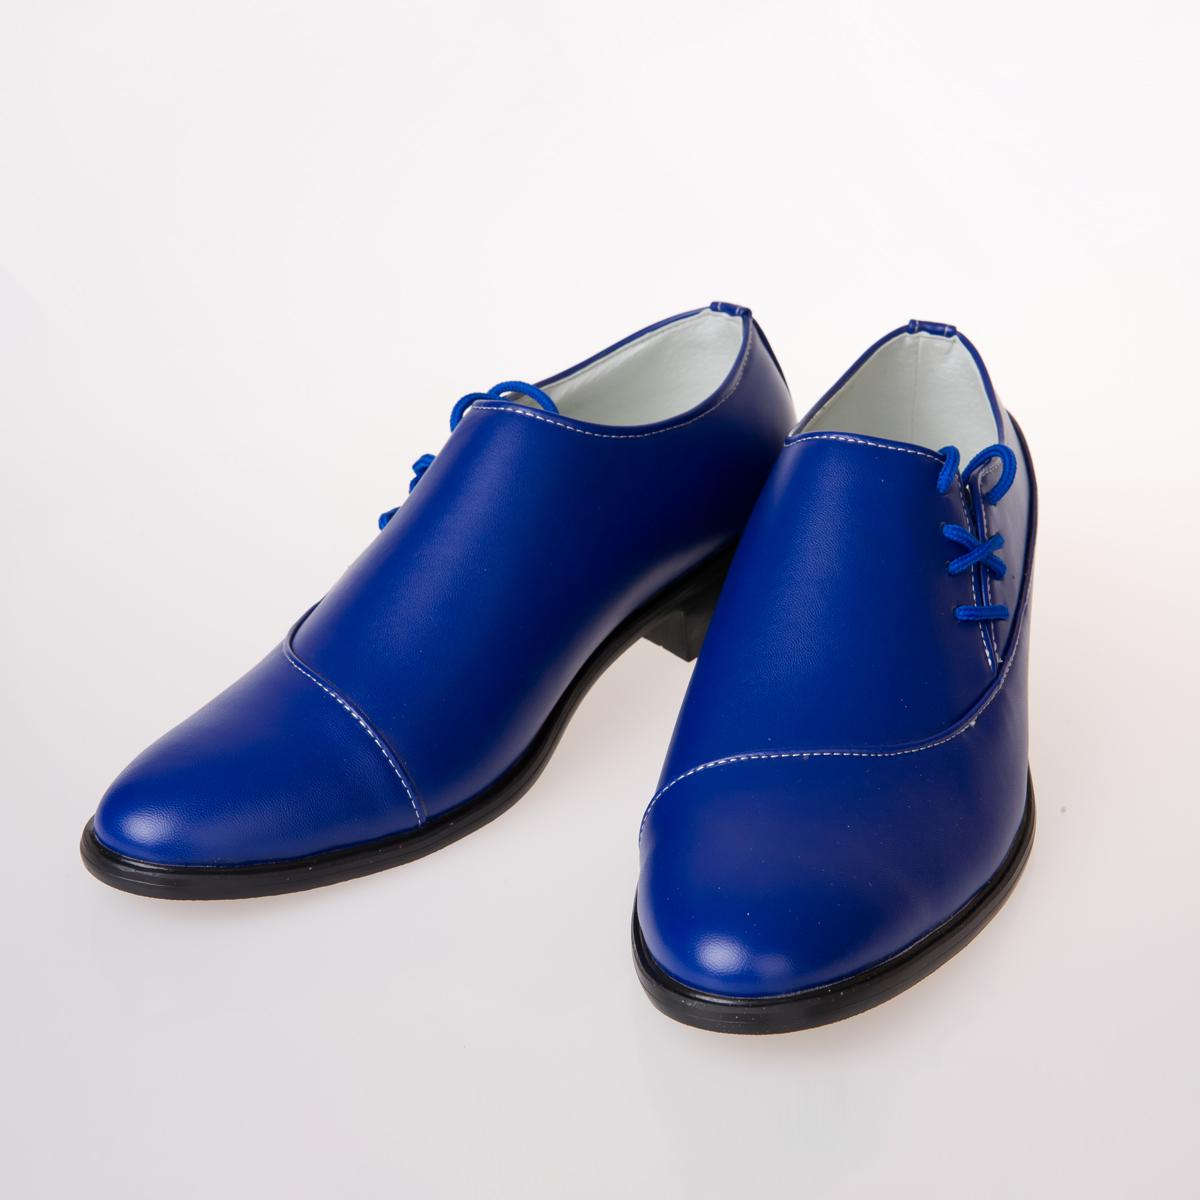 Wholesale New Fashion Men Royal Blue Leather Waterproof Shoe MenS Wedding Shoes Lace Up Dress